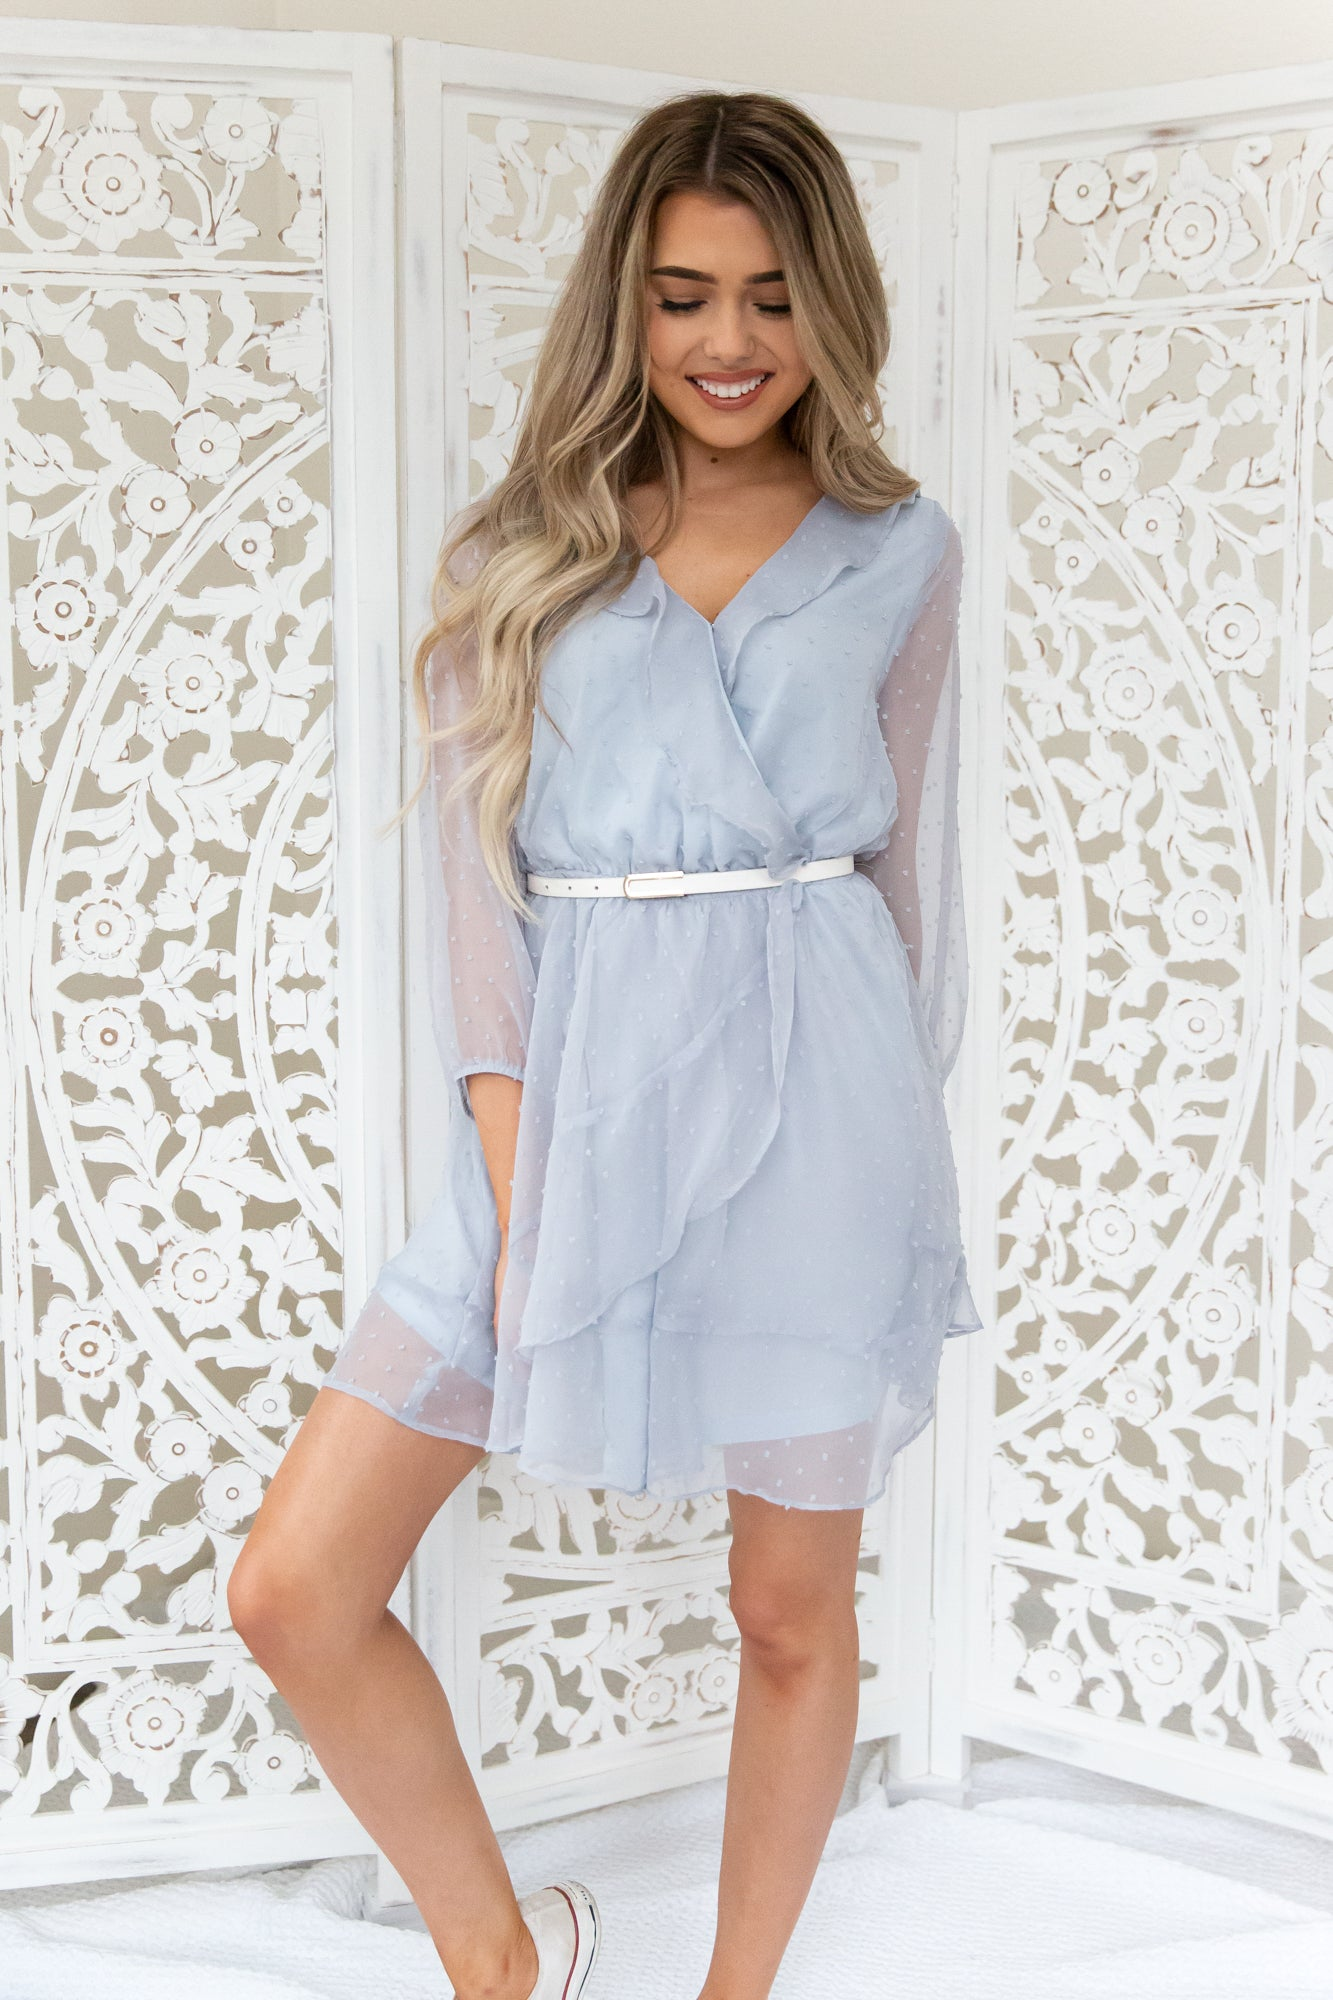 Dusty Blue Dotted Dress - llacie